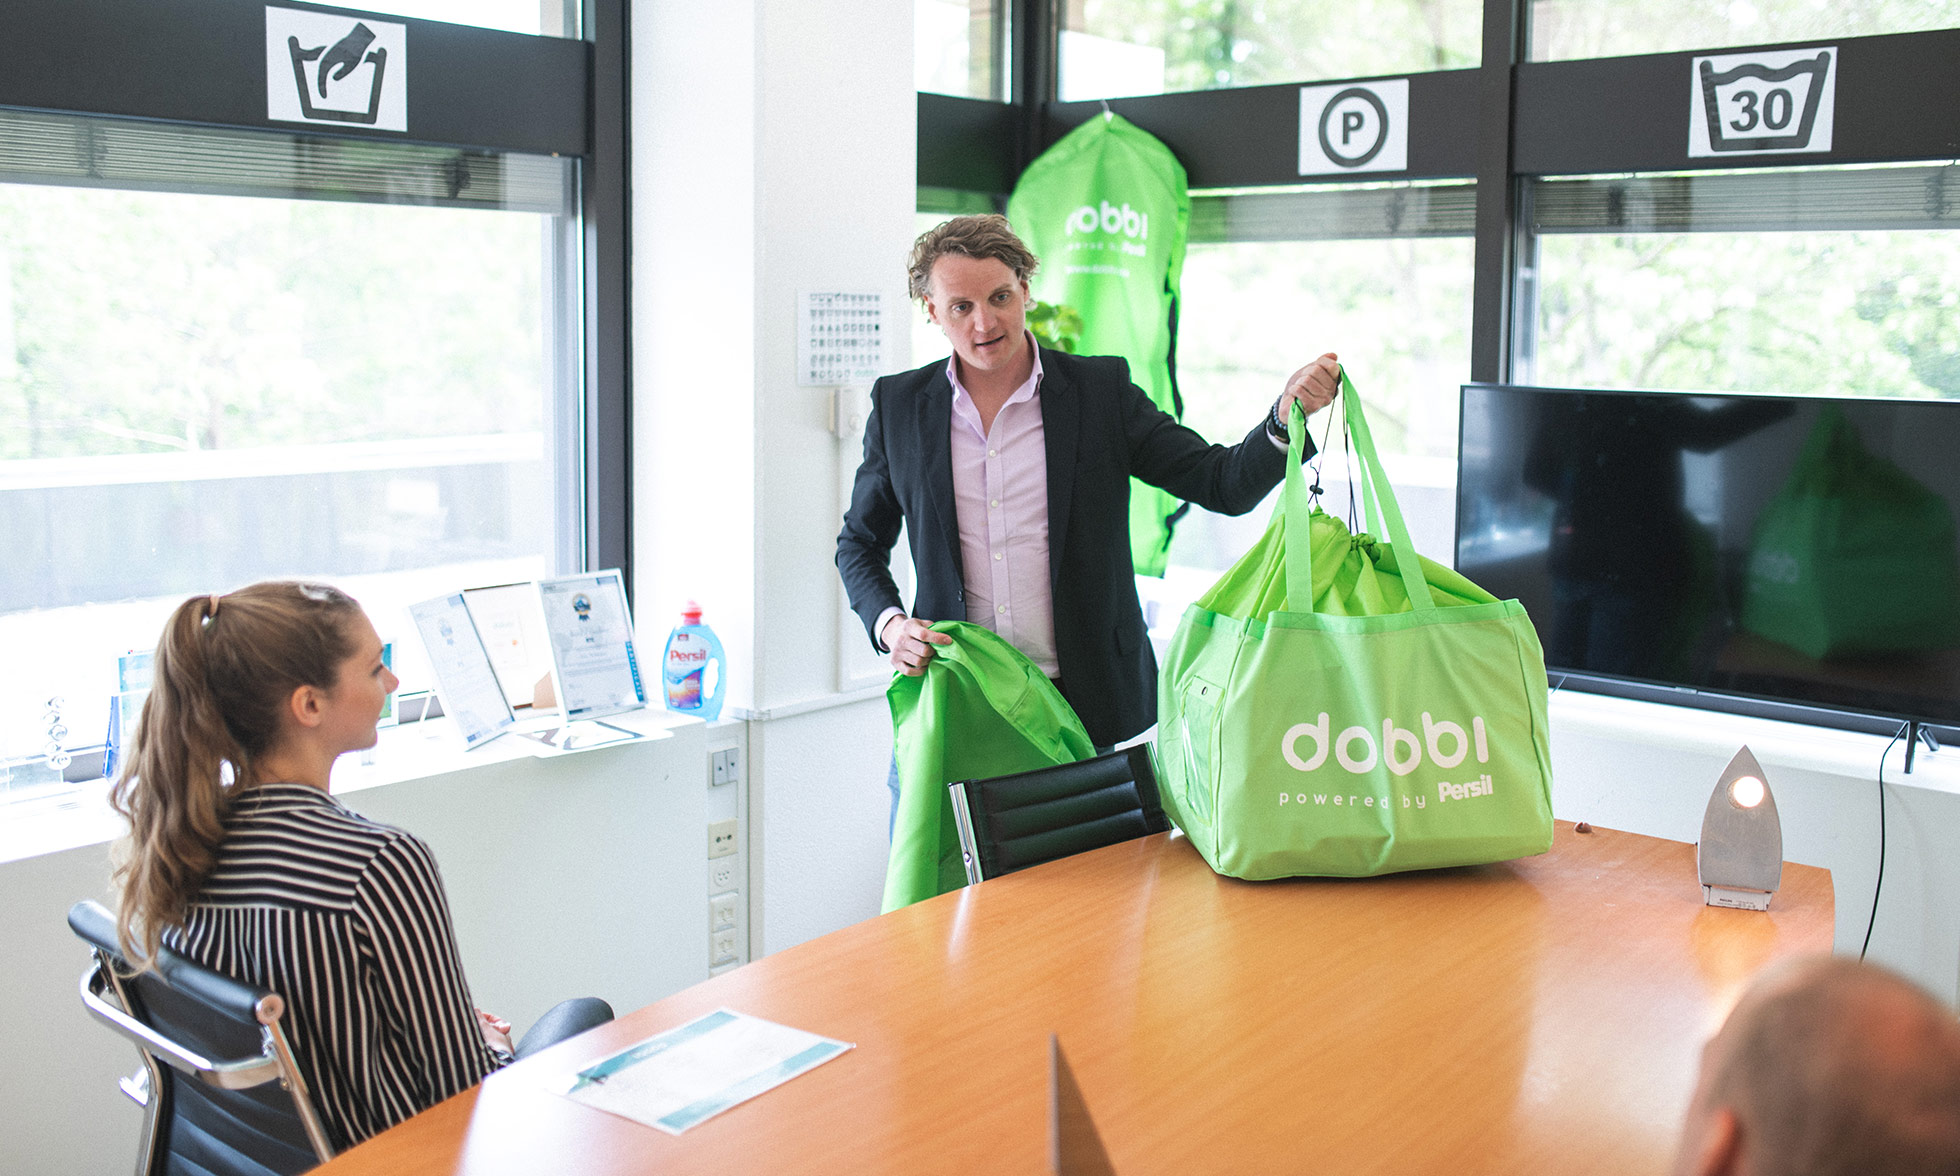 Dobbi founder Maurits Tiethoff presenting his washing bag